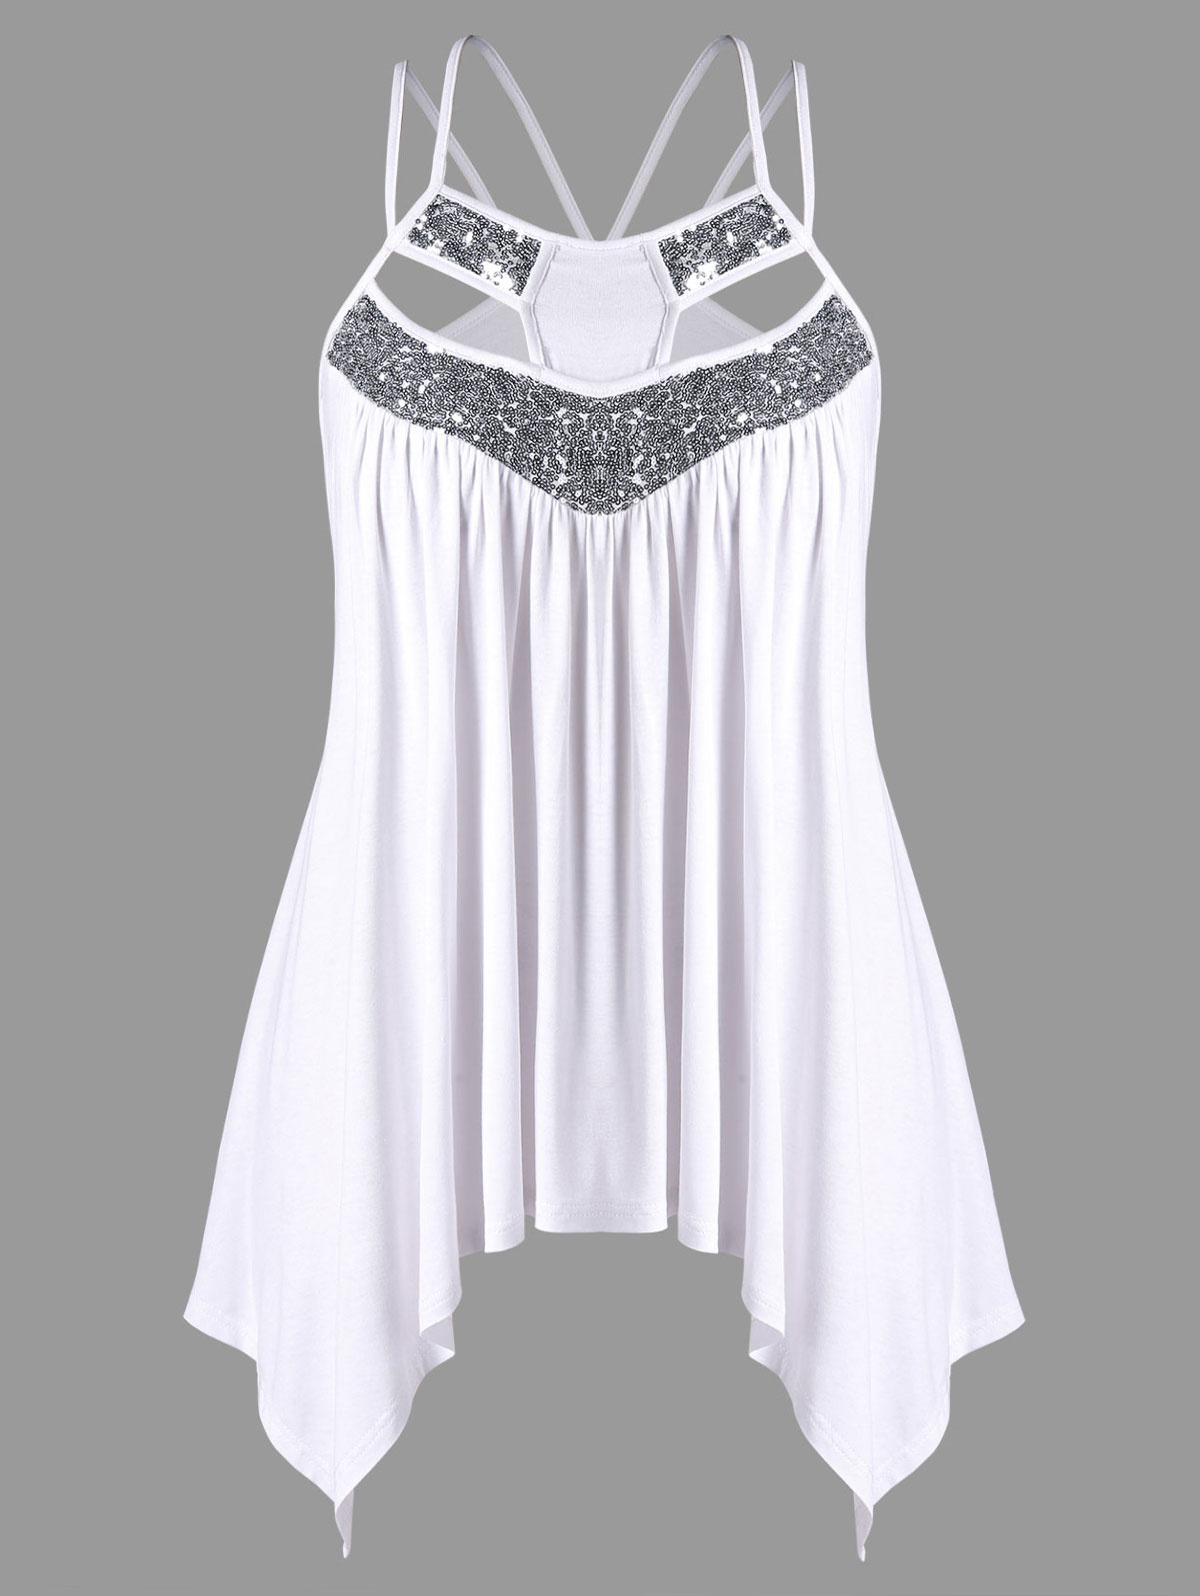 7ba852aff0d37 Collar Spaghetti Strap Style Fashion Season Summer Embellishment Sequins  Pattern Type Solid Weight 0.2700kg. Package Contents 1 x Tank Top